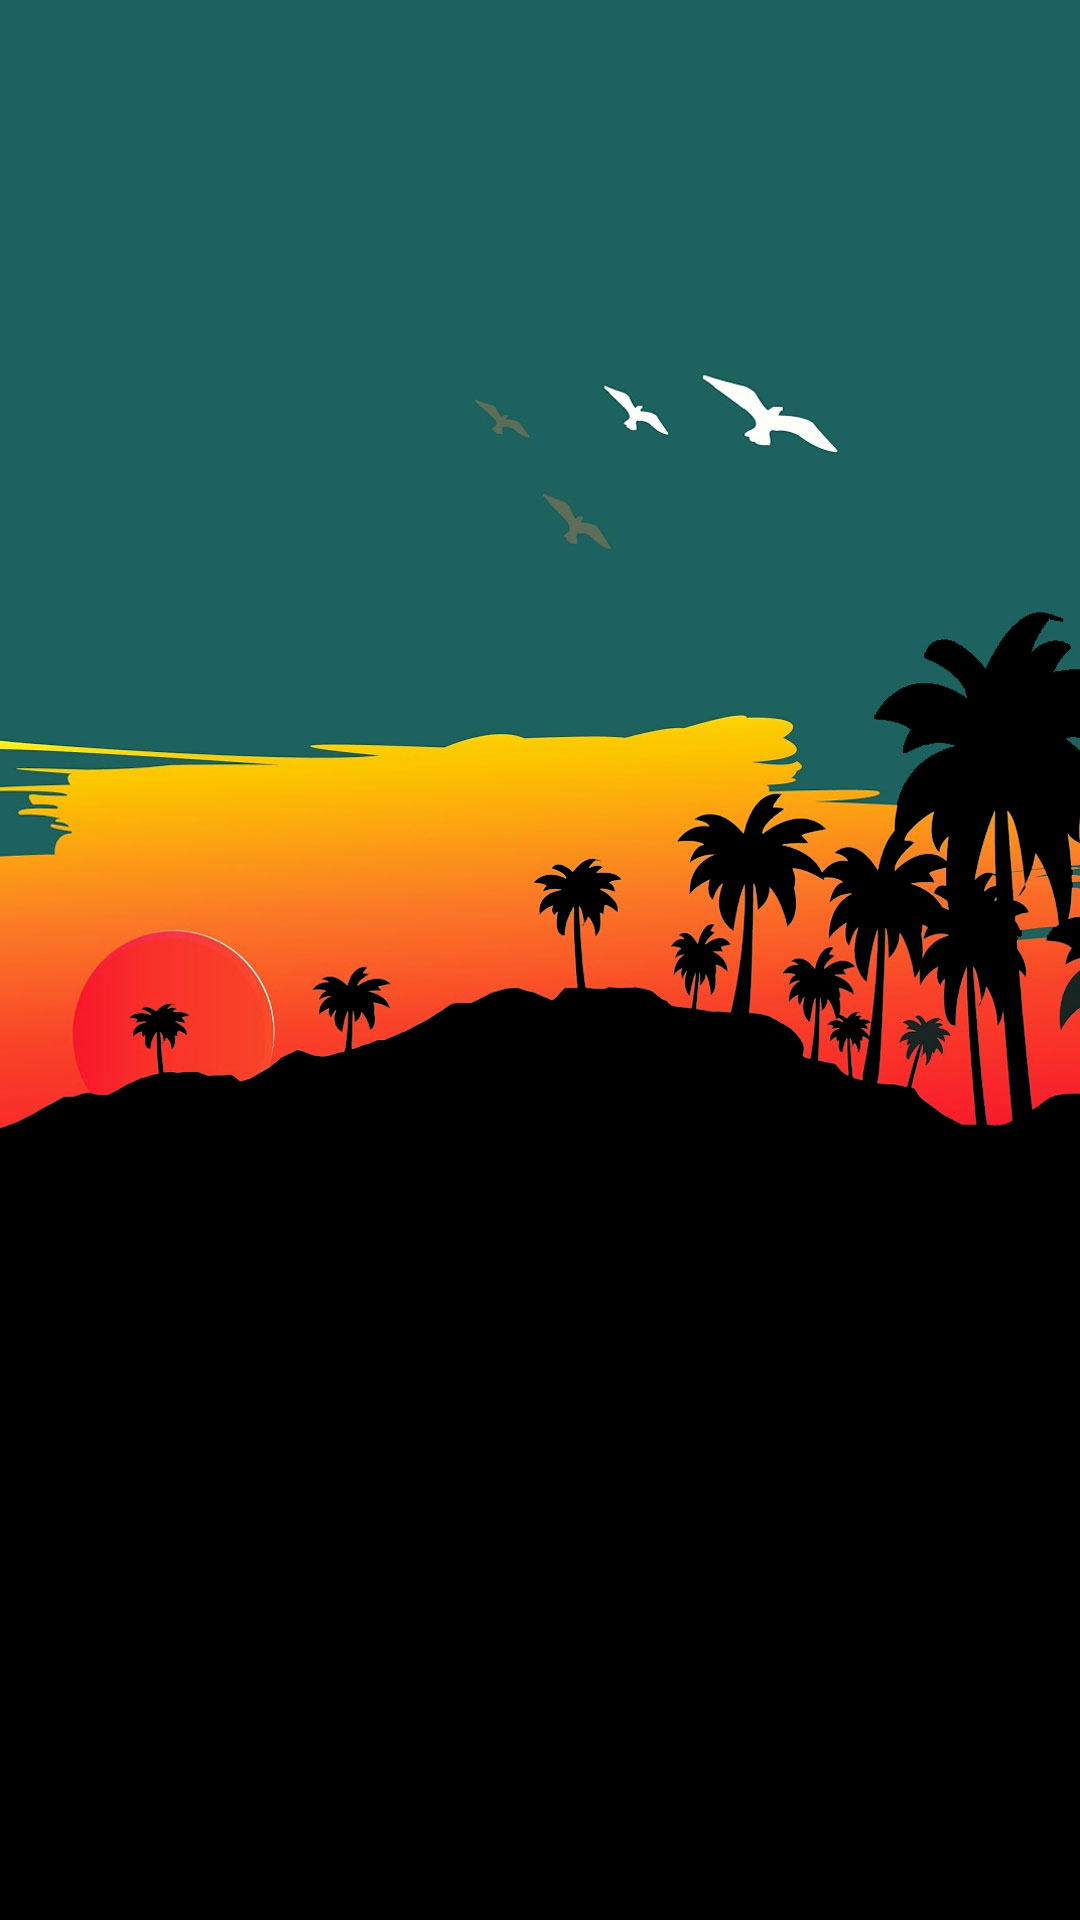 iPhone wallpaper illustration beach Illustration